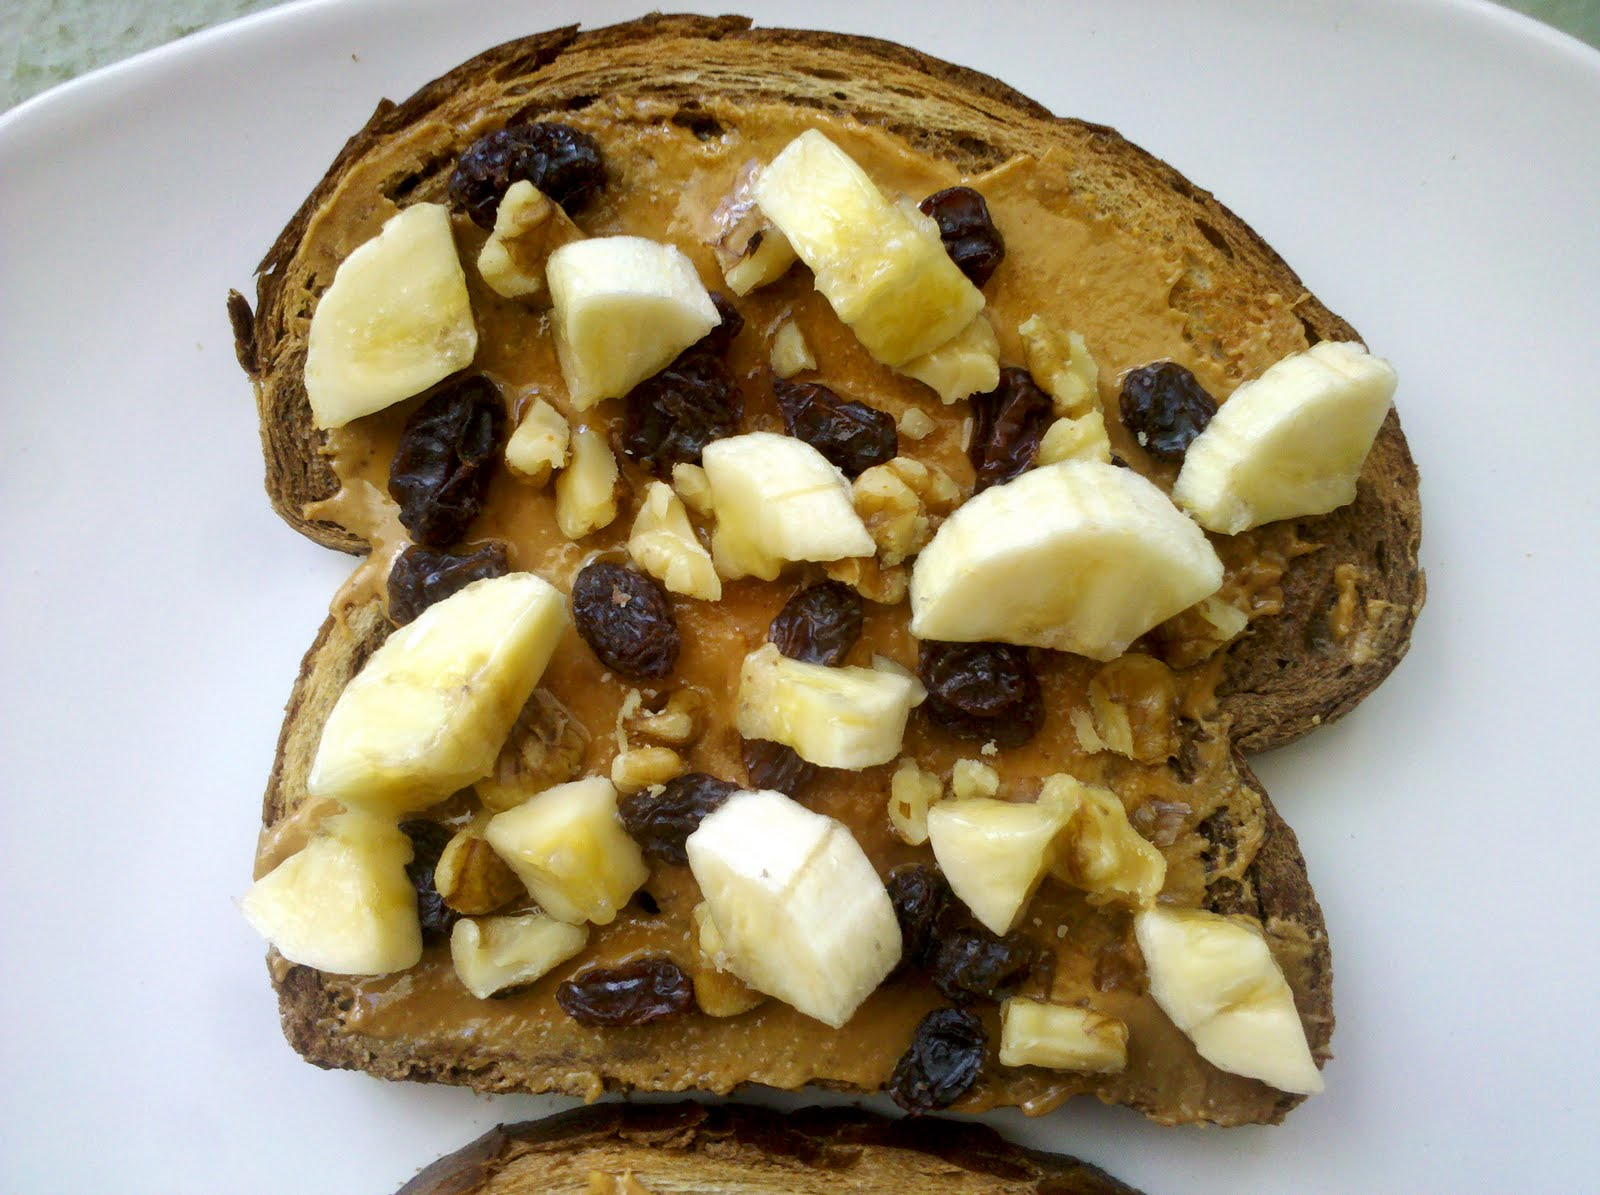 Healthy After School Snack ideas for Kids: Toast with peanut butter, raisins, walnuts and banana slices!